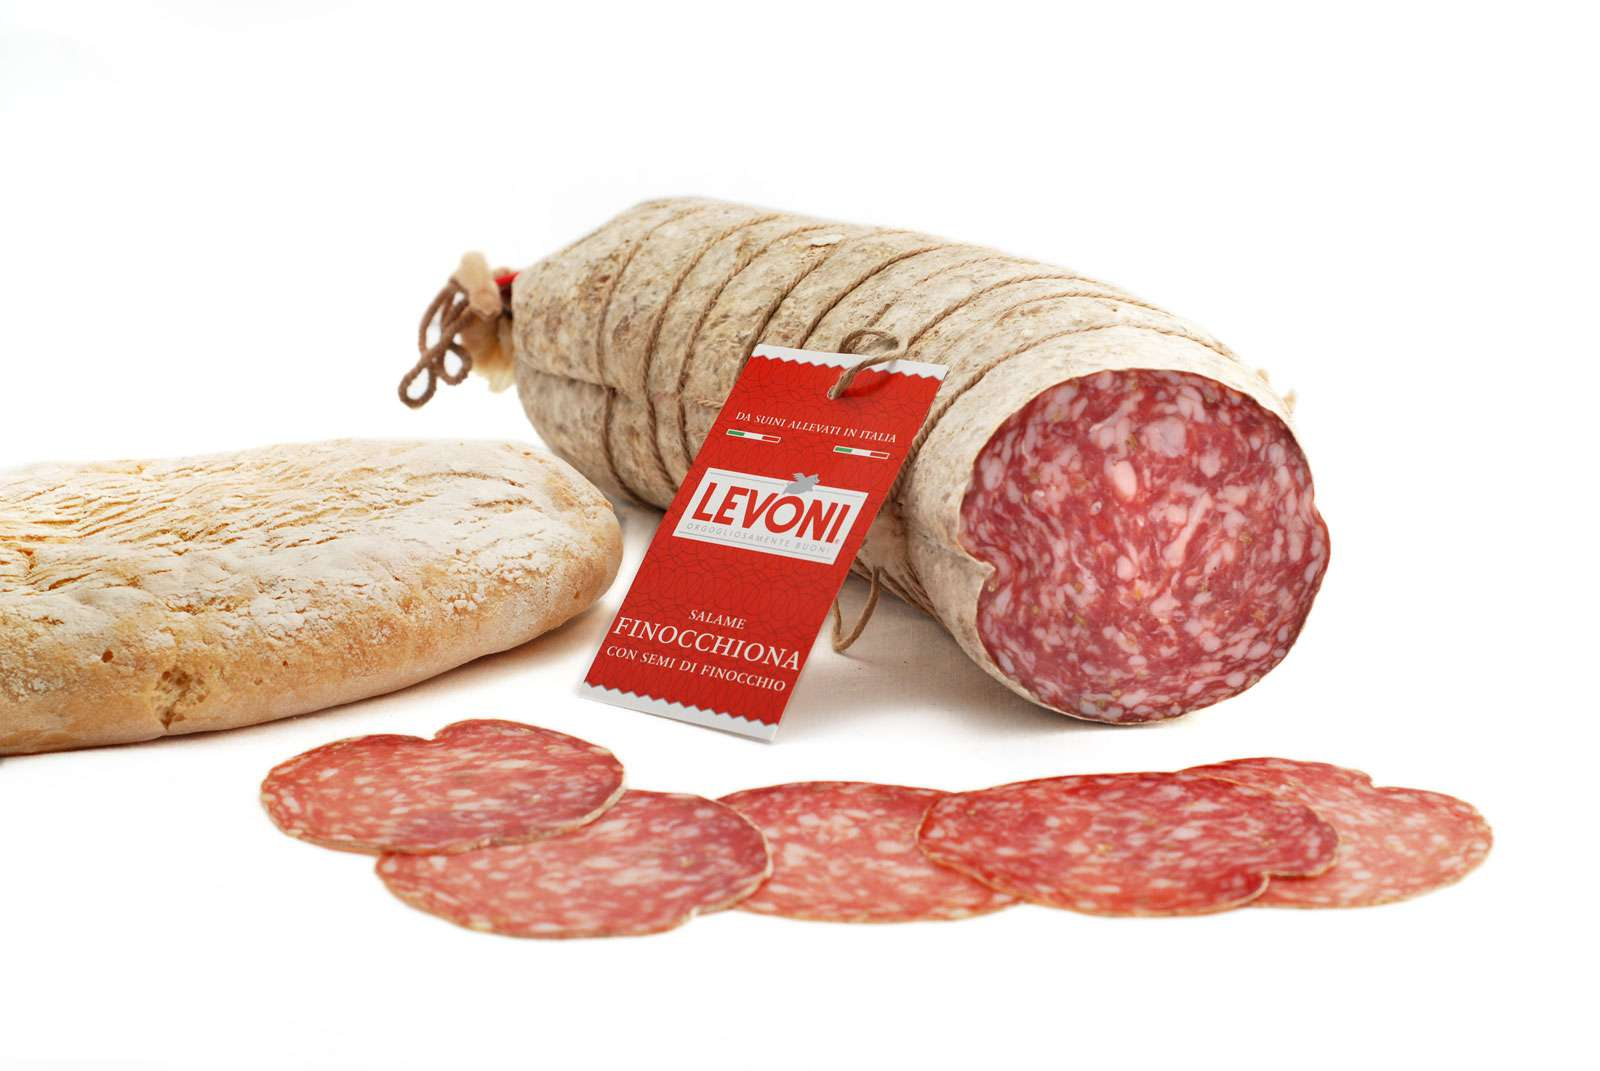 Salame Finocchiona Toscana with Fennel seeds sliced per 100g* 100g